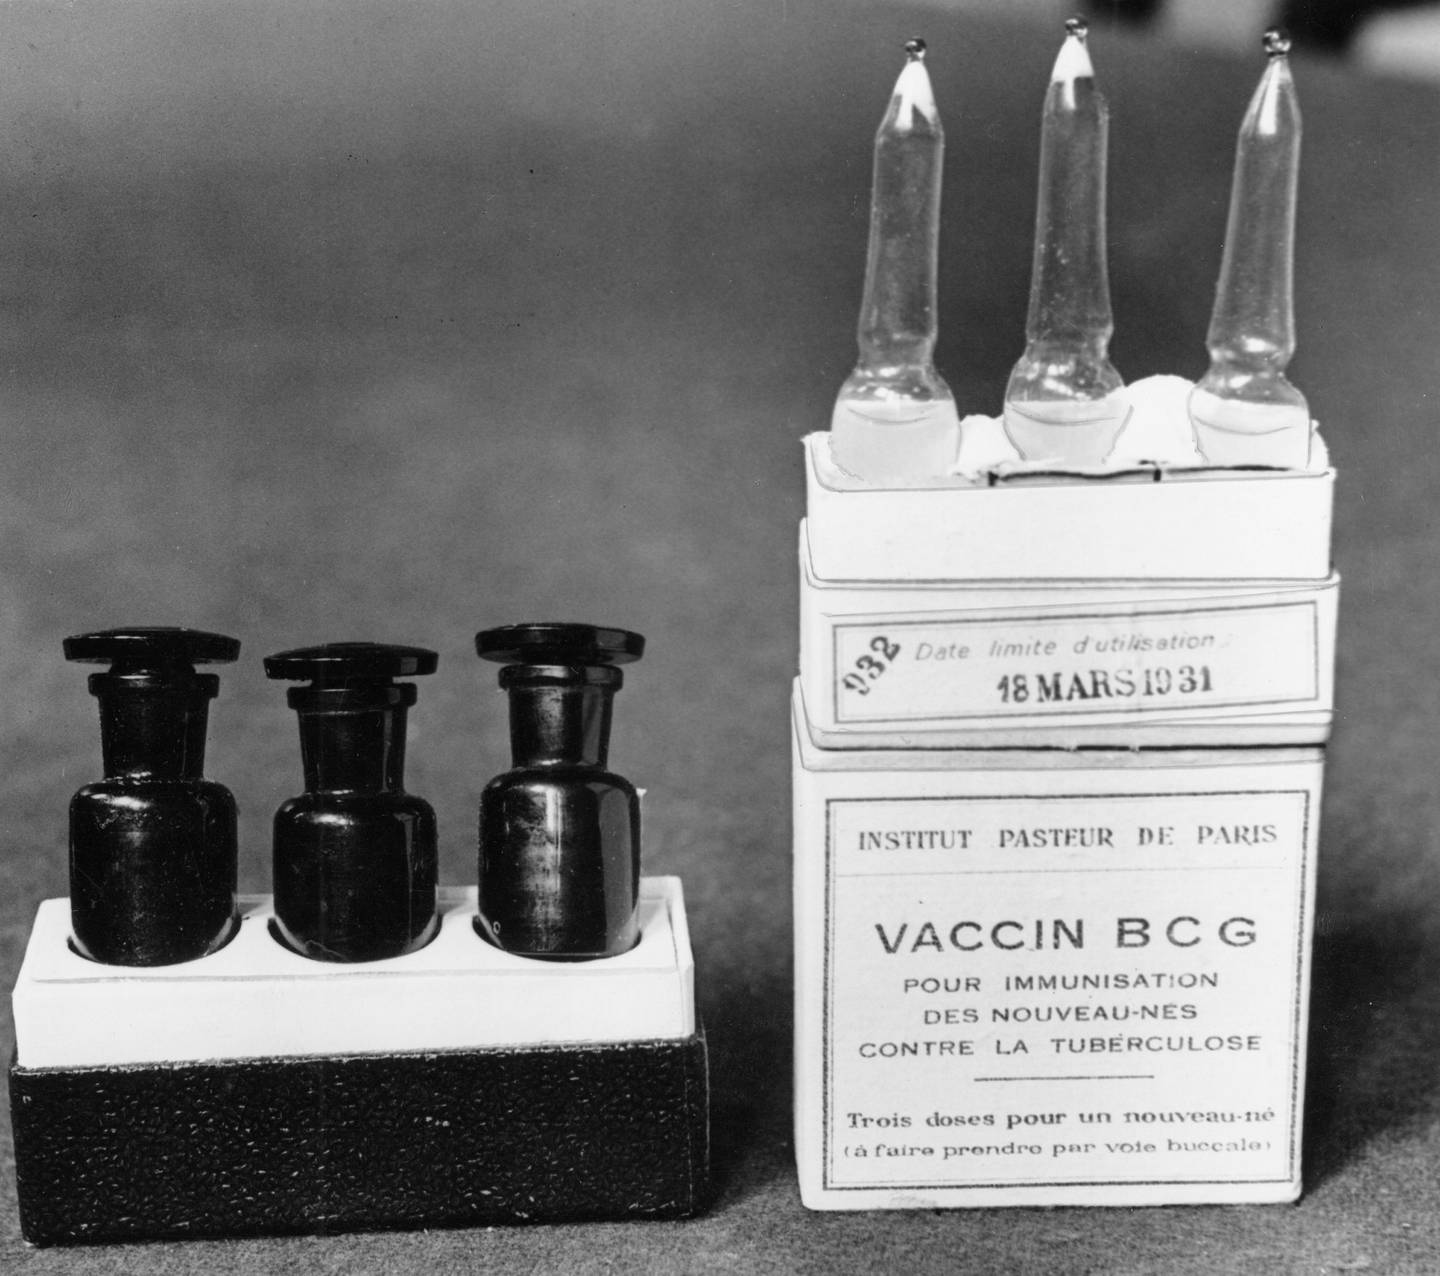 FILE - This March 1931 file photo shows ampules of the BCG vaccine against tuberculosis in a laboratory at the Institute Pasteur in Paris, France. Dec. 2, 1947 file photo. Scientists are dusting off some decades-old vaccines against TB and polio to see if they could provide stopgap protection against COVID-19 until a more precise shot arrives.  (AP Photo/Alfred Eisenstaedt)